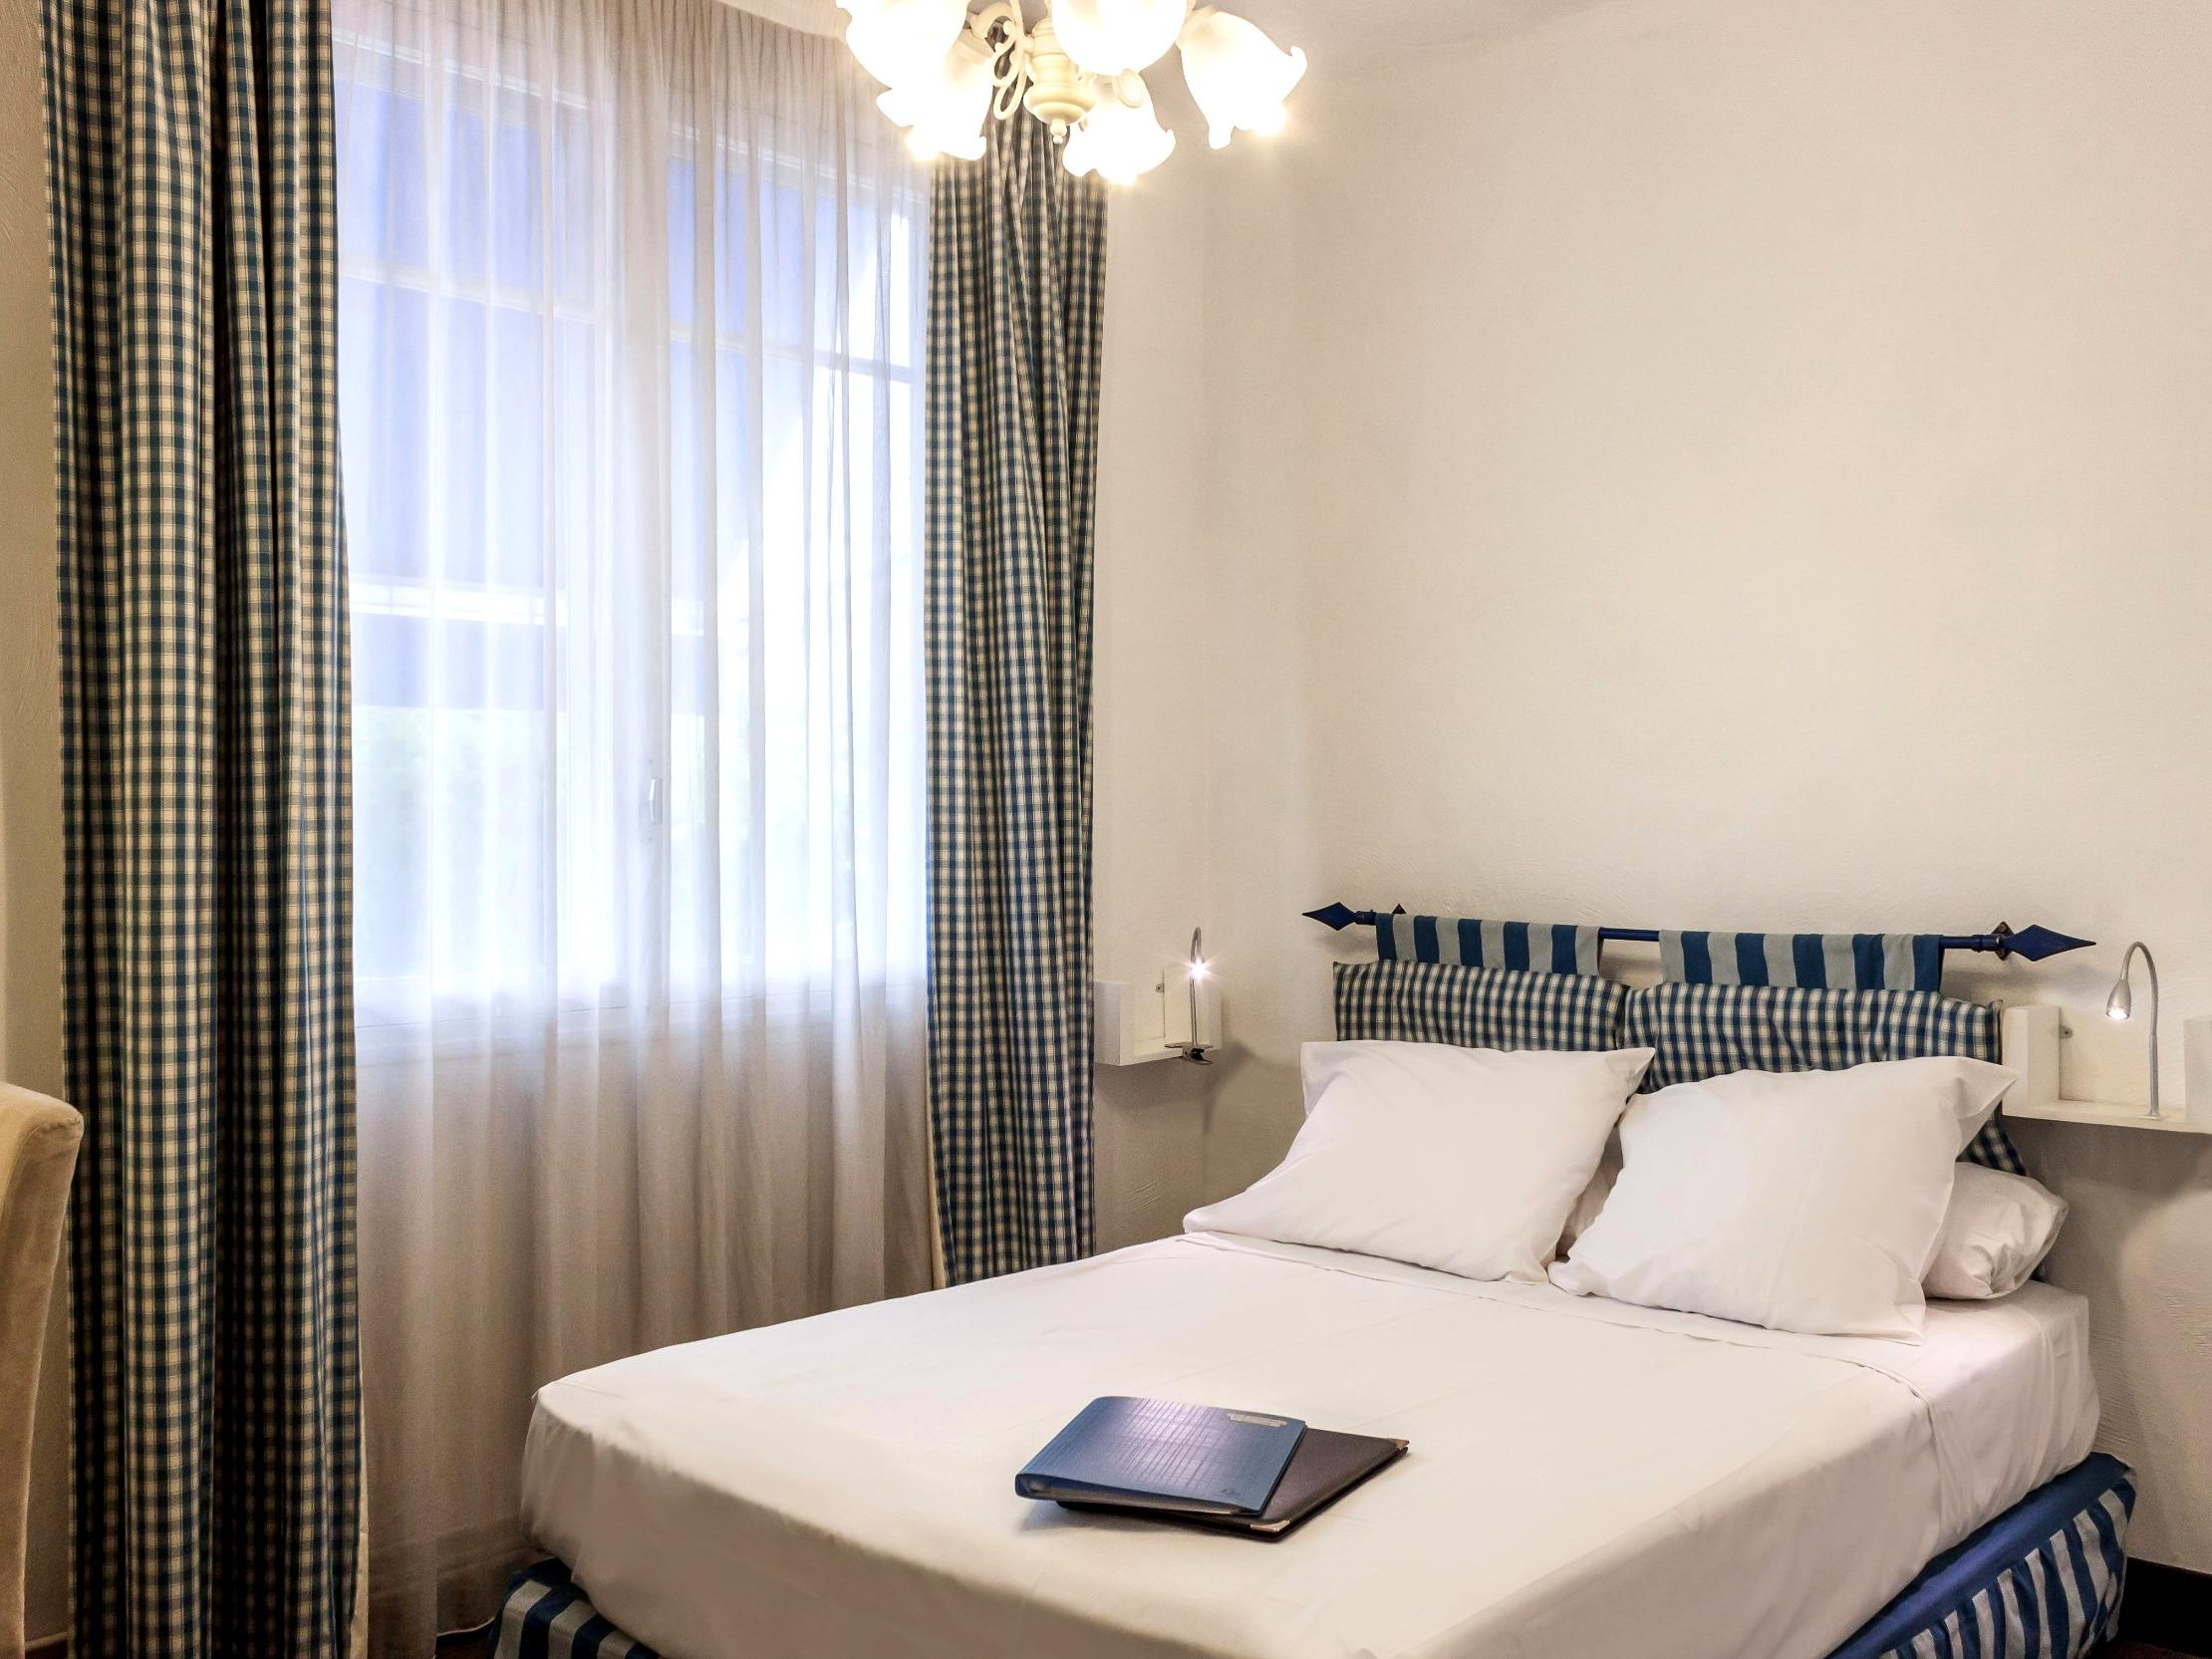 Double Bedrooms, Hotels in Vence